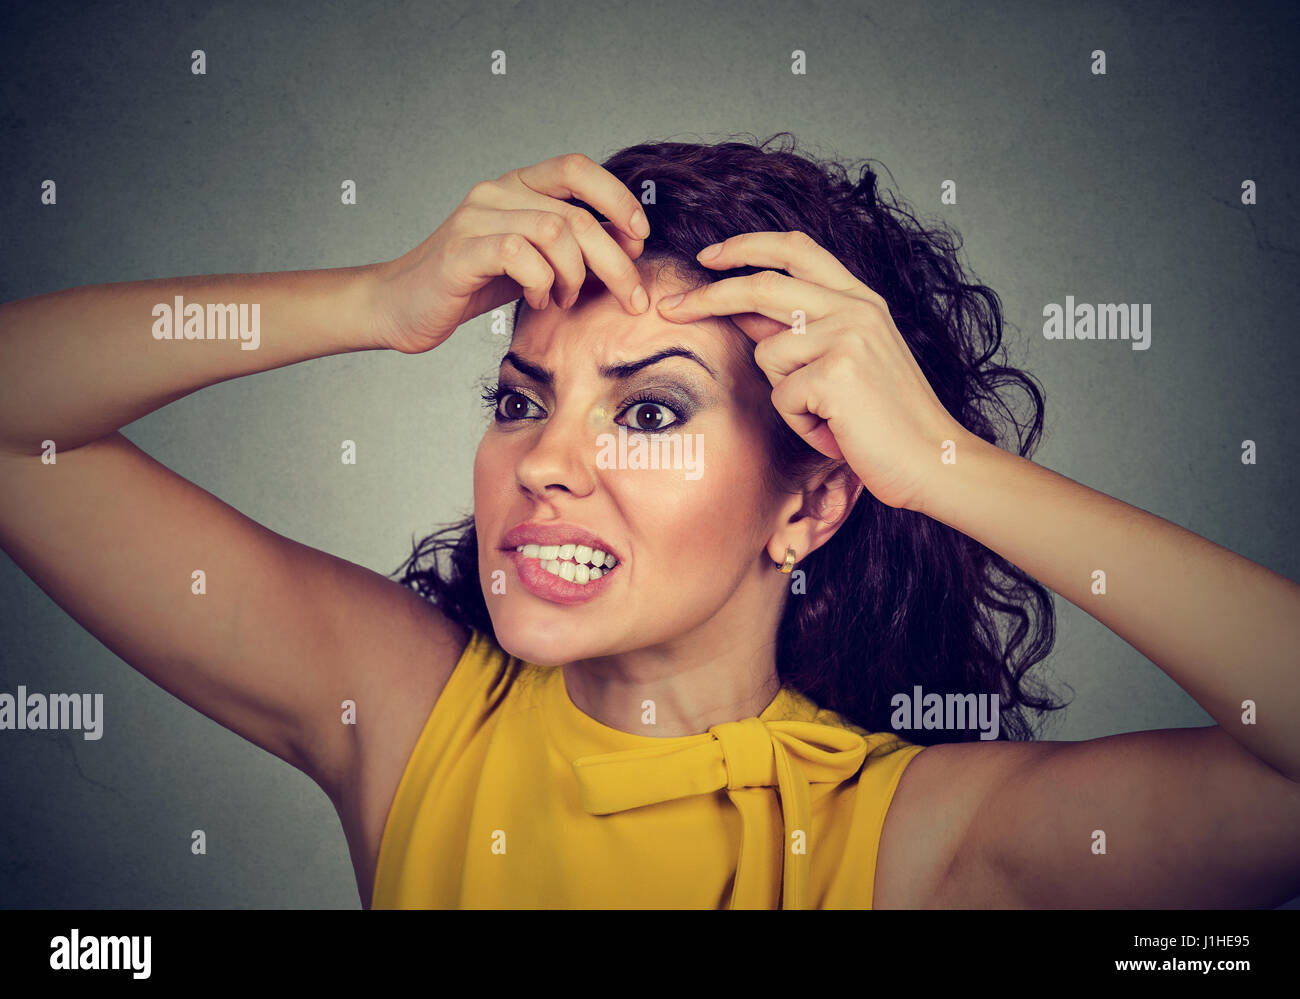 Closeup portrait of a woman looking in a mirror squeezing an acne or blackhead on her face forehead - Stock Image